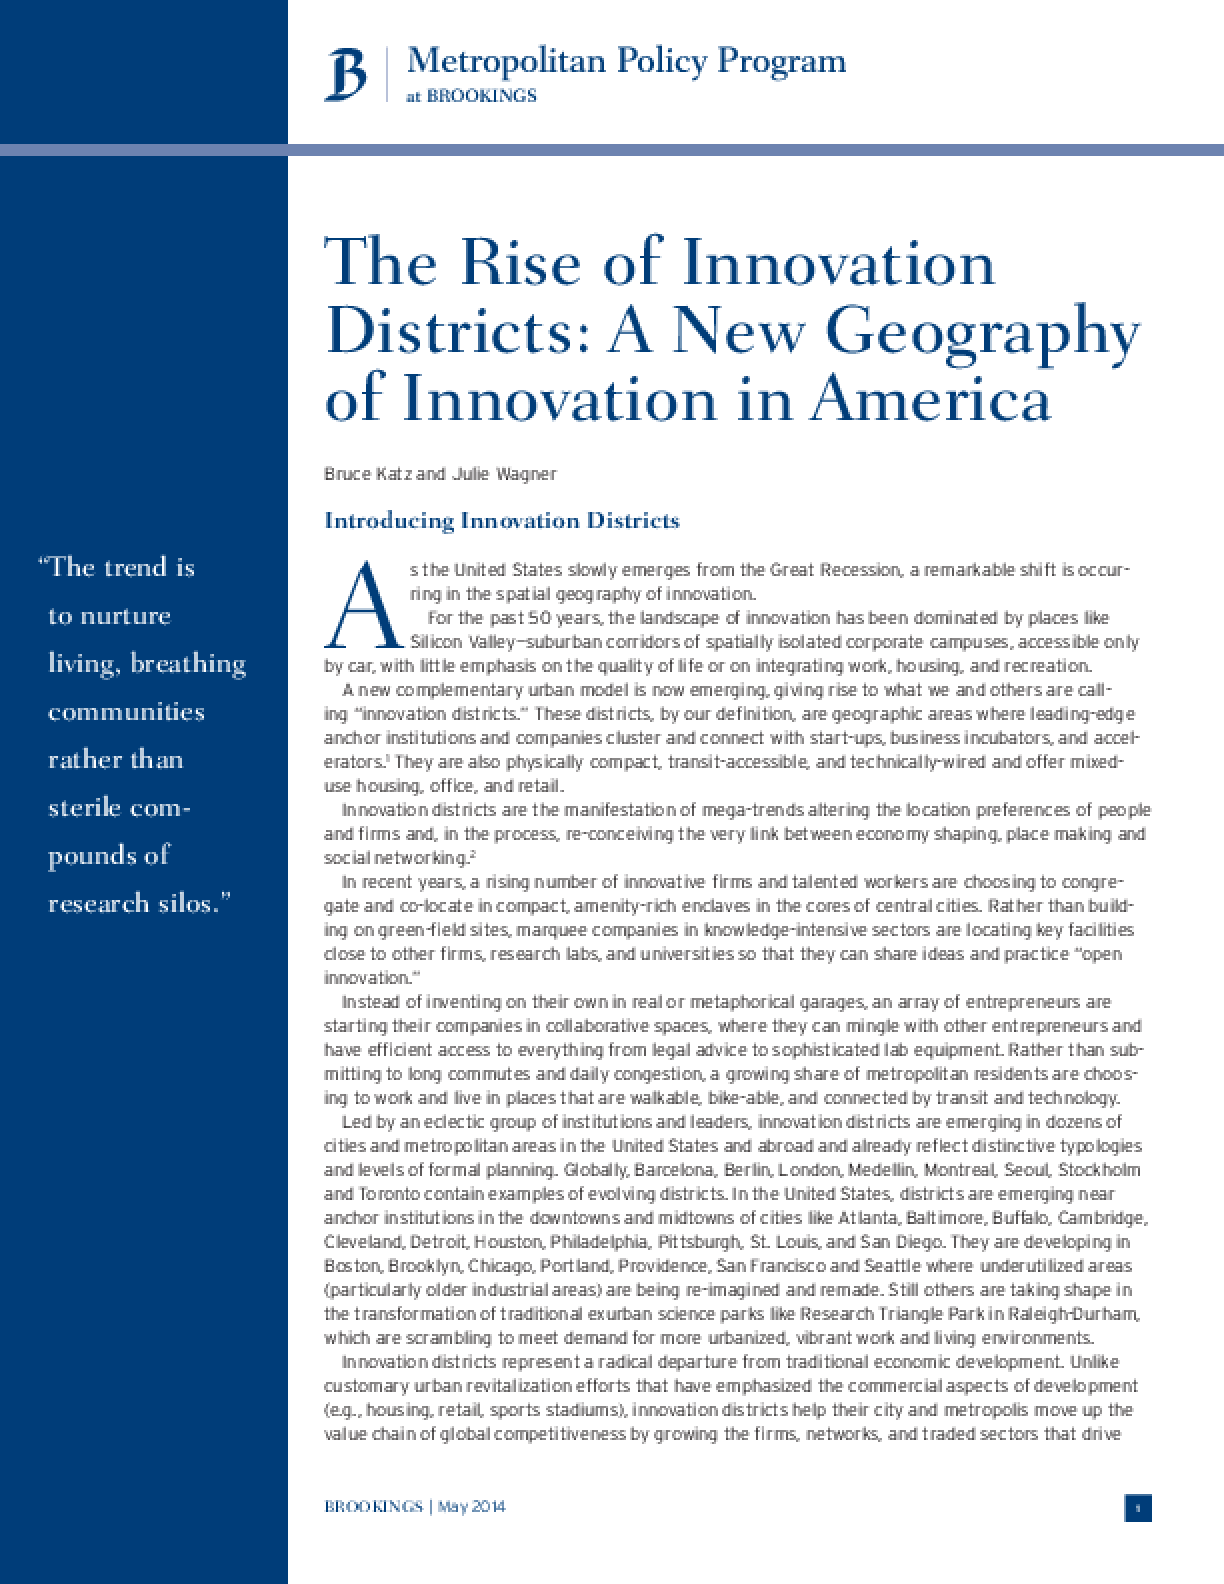 The Rise of Innovation Districts: A New Geography of Innovation in America